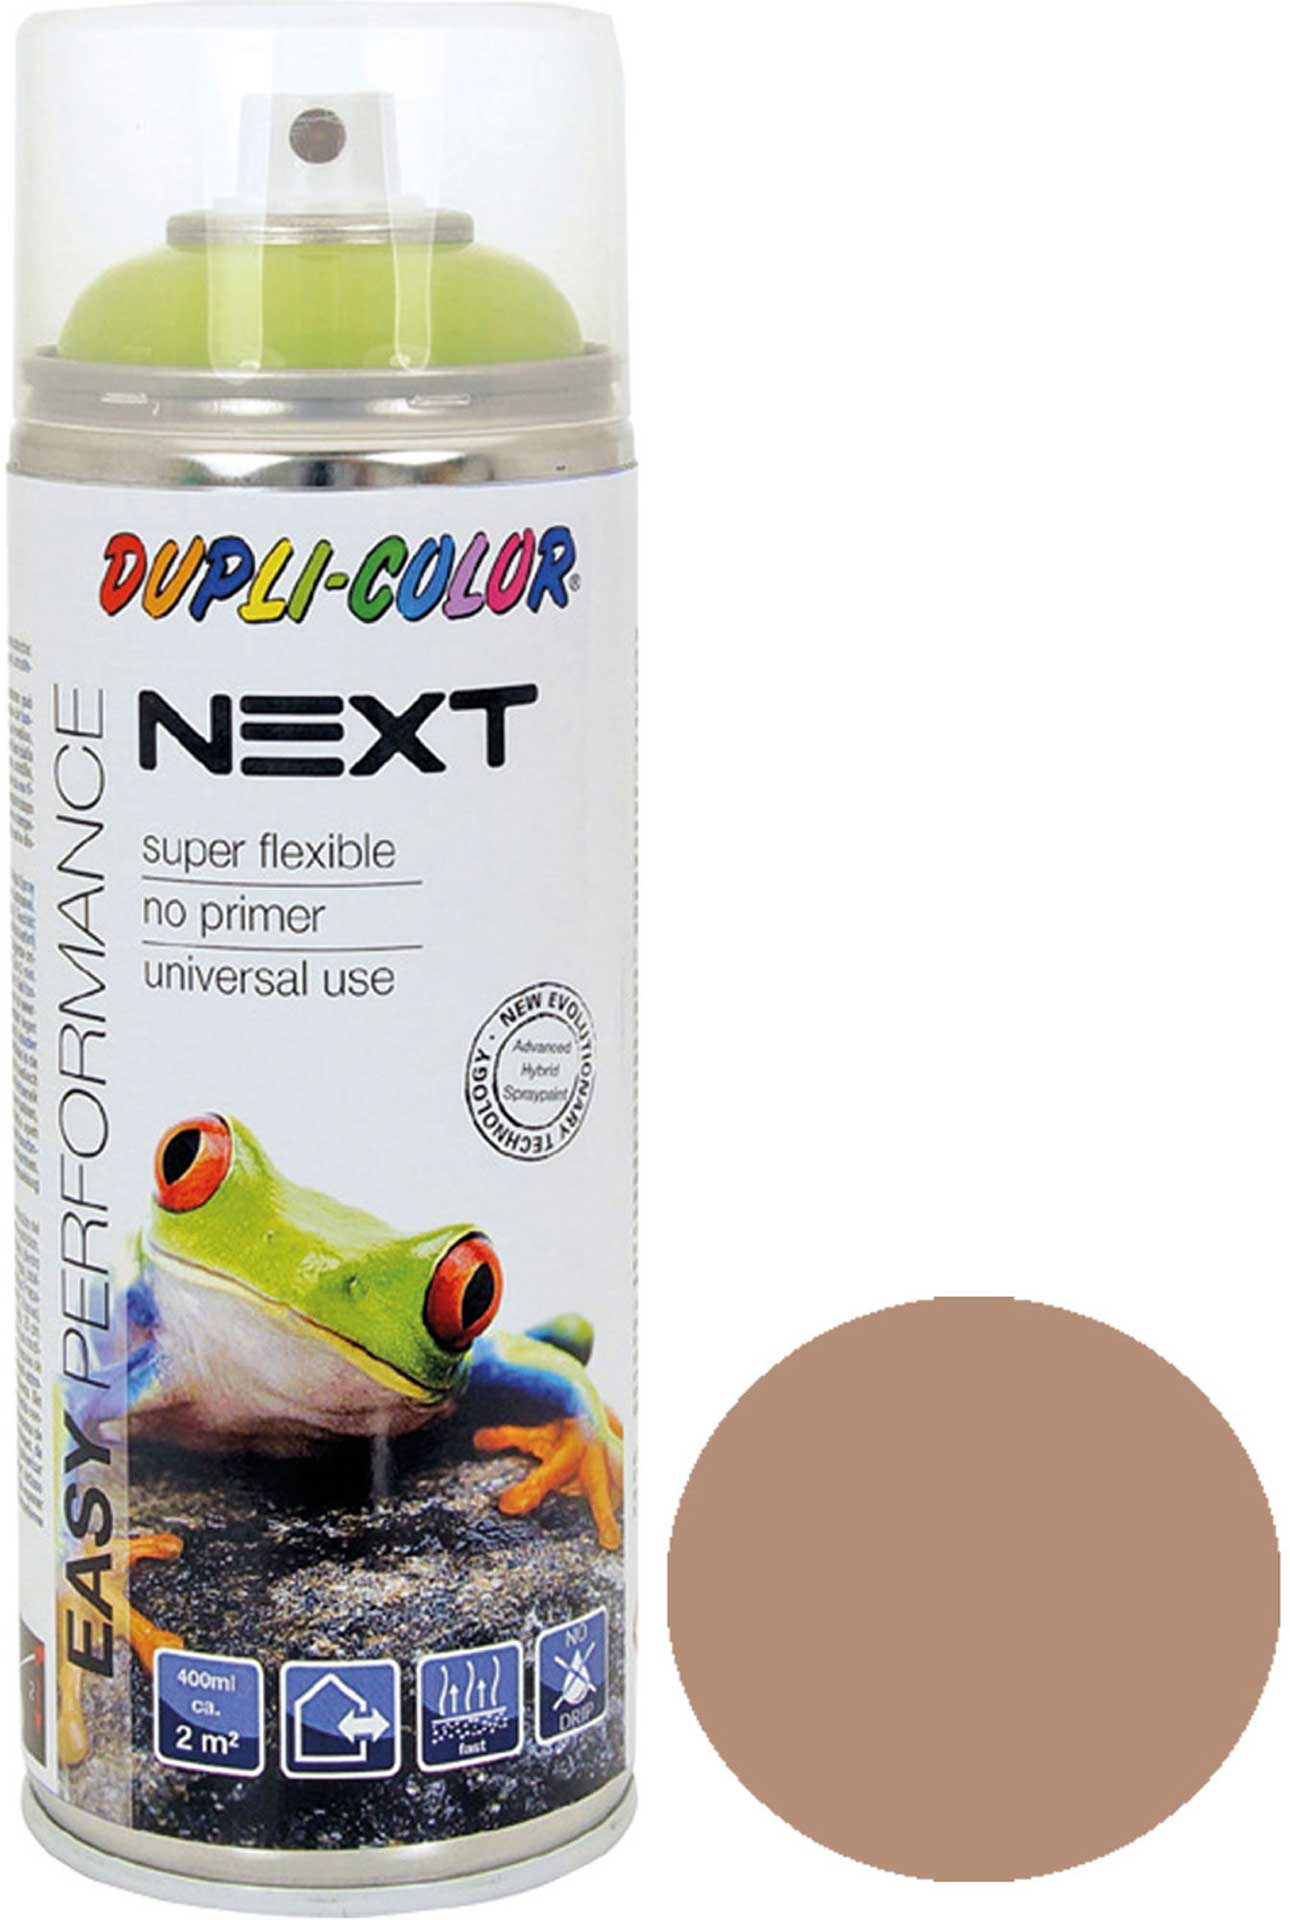 DUPLI-COLOR NEXT PARIS BEIGE SDM. 400ML SPRAY PAINT